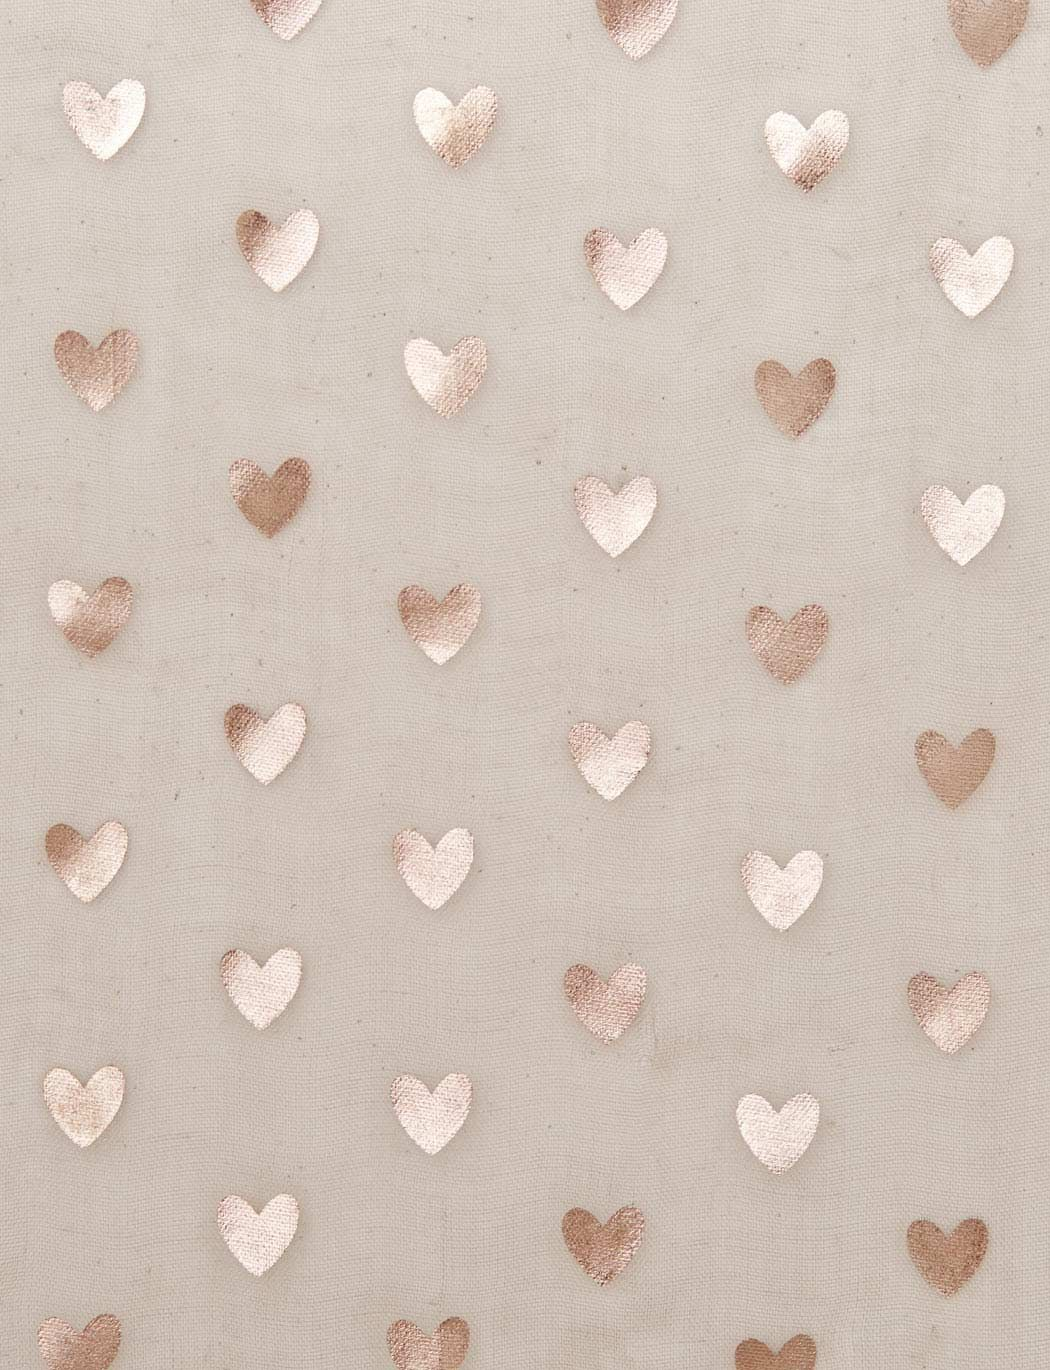 Foil Heart Scarf Women S Accessories The Limited Iphone Wallpaper Pattern Gold Wallpaper Iphone Pattern Wallpaper